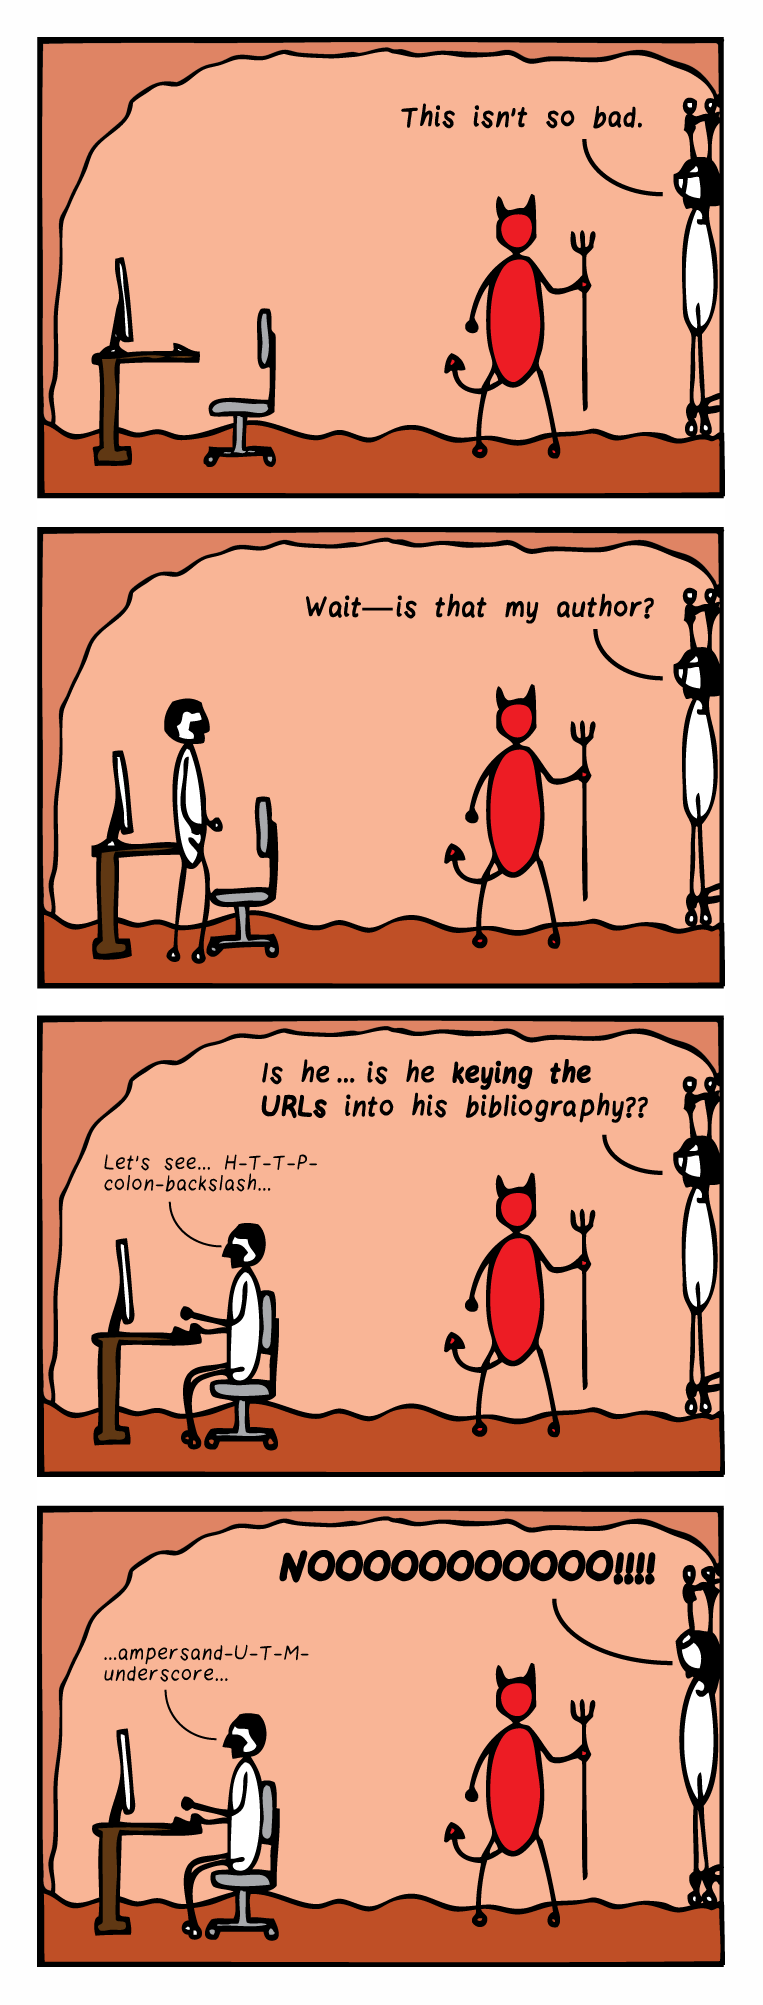 """Four-panel comic strip. Panel 1: Bespectacled editor is chained to the wall in hell while the devil stands by. There is a computer desk in the room. The editor says, """"This isn't so bad."""" Panel 2: A man approaches the computer desk. The editor says, """"Wait—is that my author?"""" Panel 3: The man is seated at the computer desk and mutters, """"Let's see... H-T-T-P-colon-backslash..."""" The editor says, """"Is he…is he keying the URLs into his bibliography??"""" Panel 4: The man continues to type, muttering, """"ampersand-U-T-M-underscore…"""" The editor tilts her head back and screams, """"NOOOOOOOOOO!!!"""""""